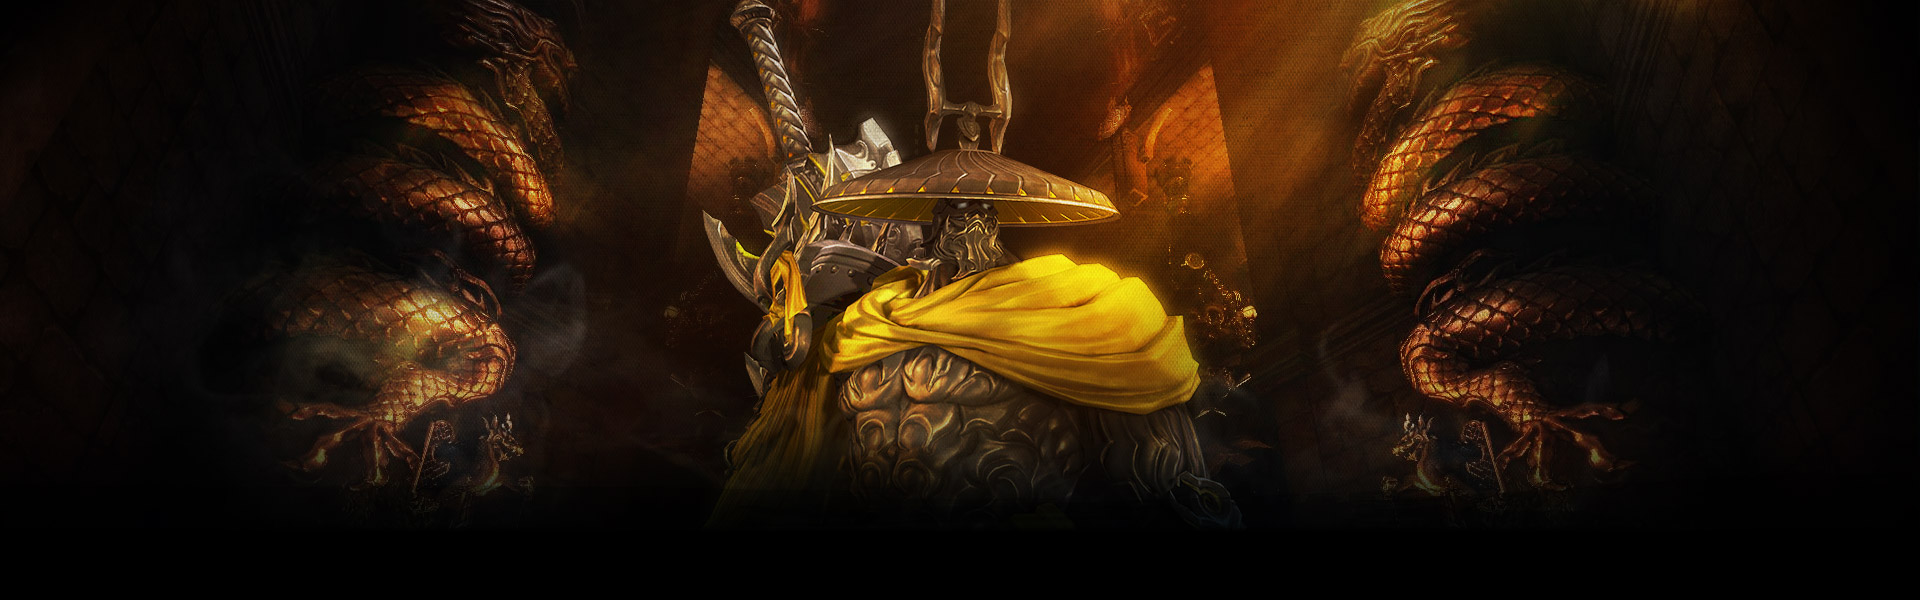 Update 3 5 - Rage of the Hive Queen - LF Strat | Blade&Soul